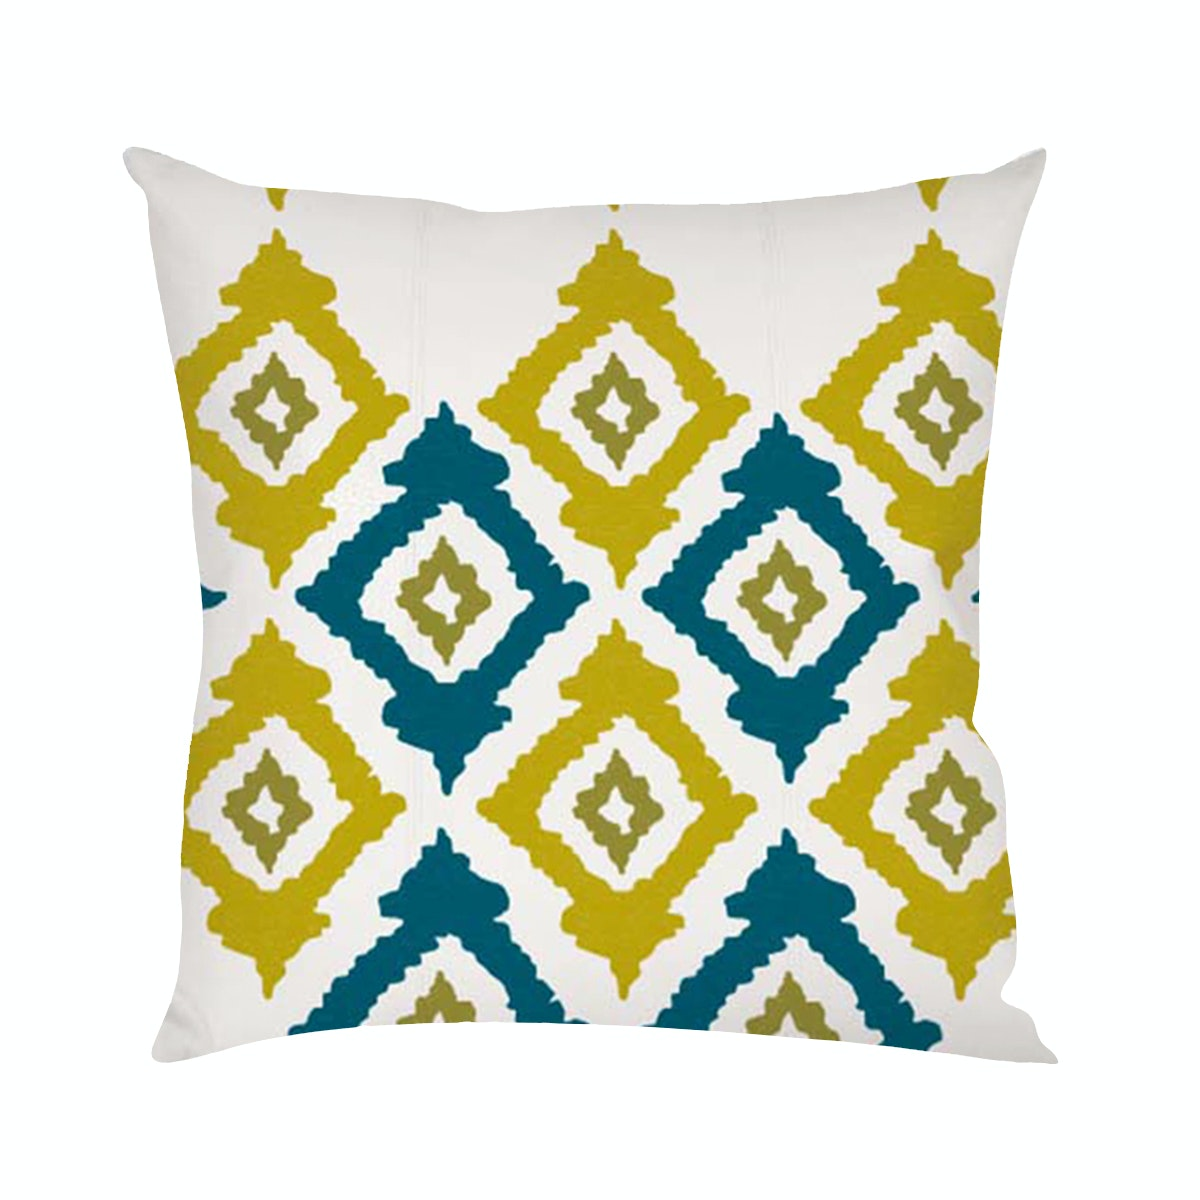 On&On Greenie Ikat #6 Cushion 40x40cm (Insert+Cover)